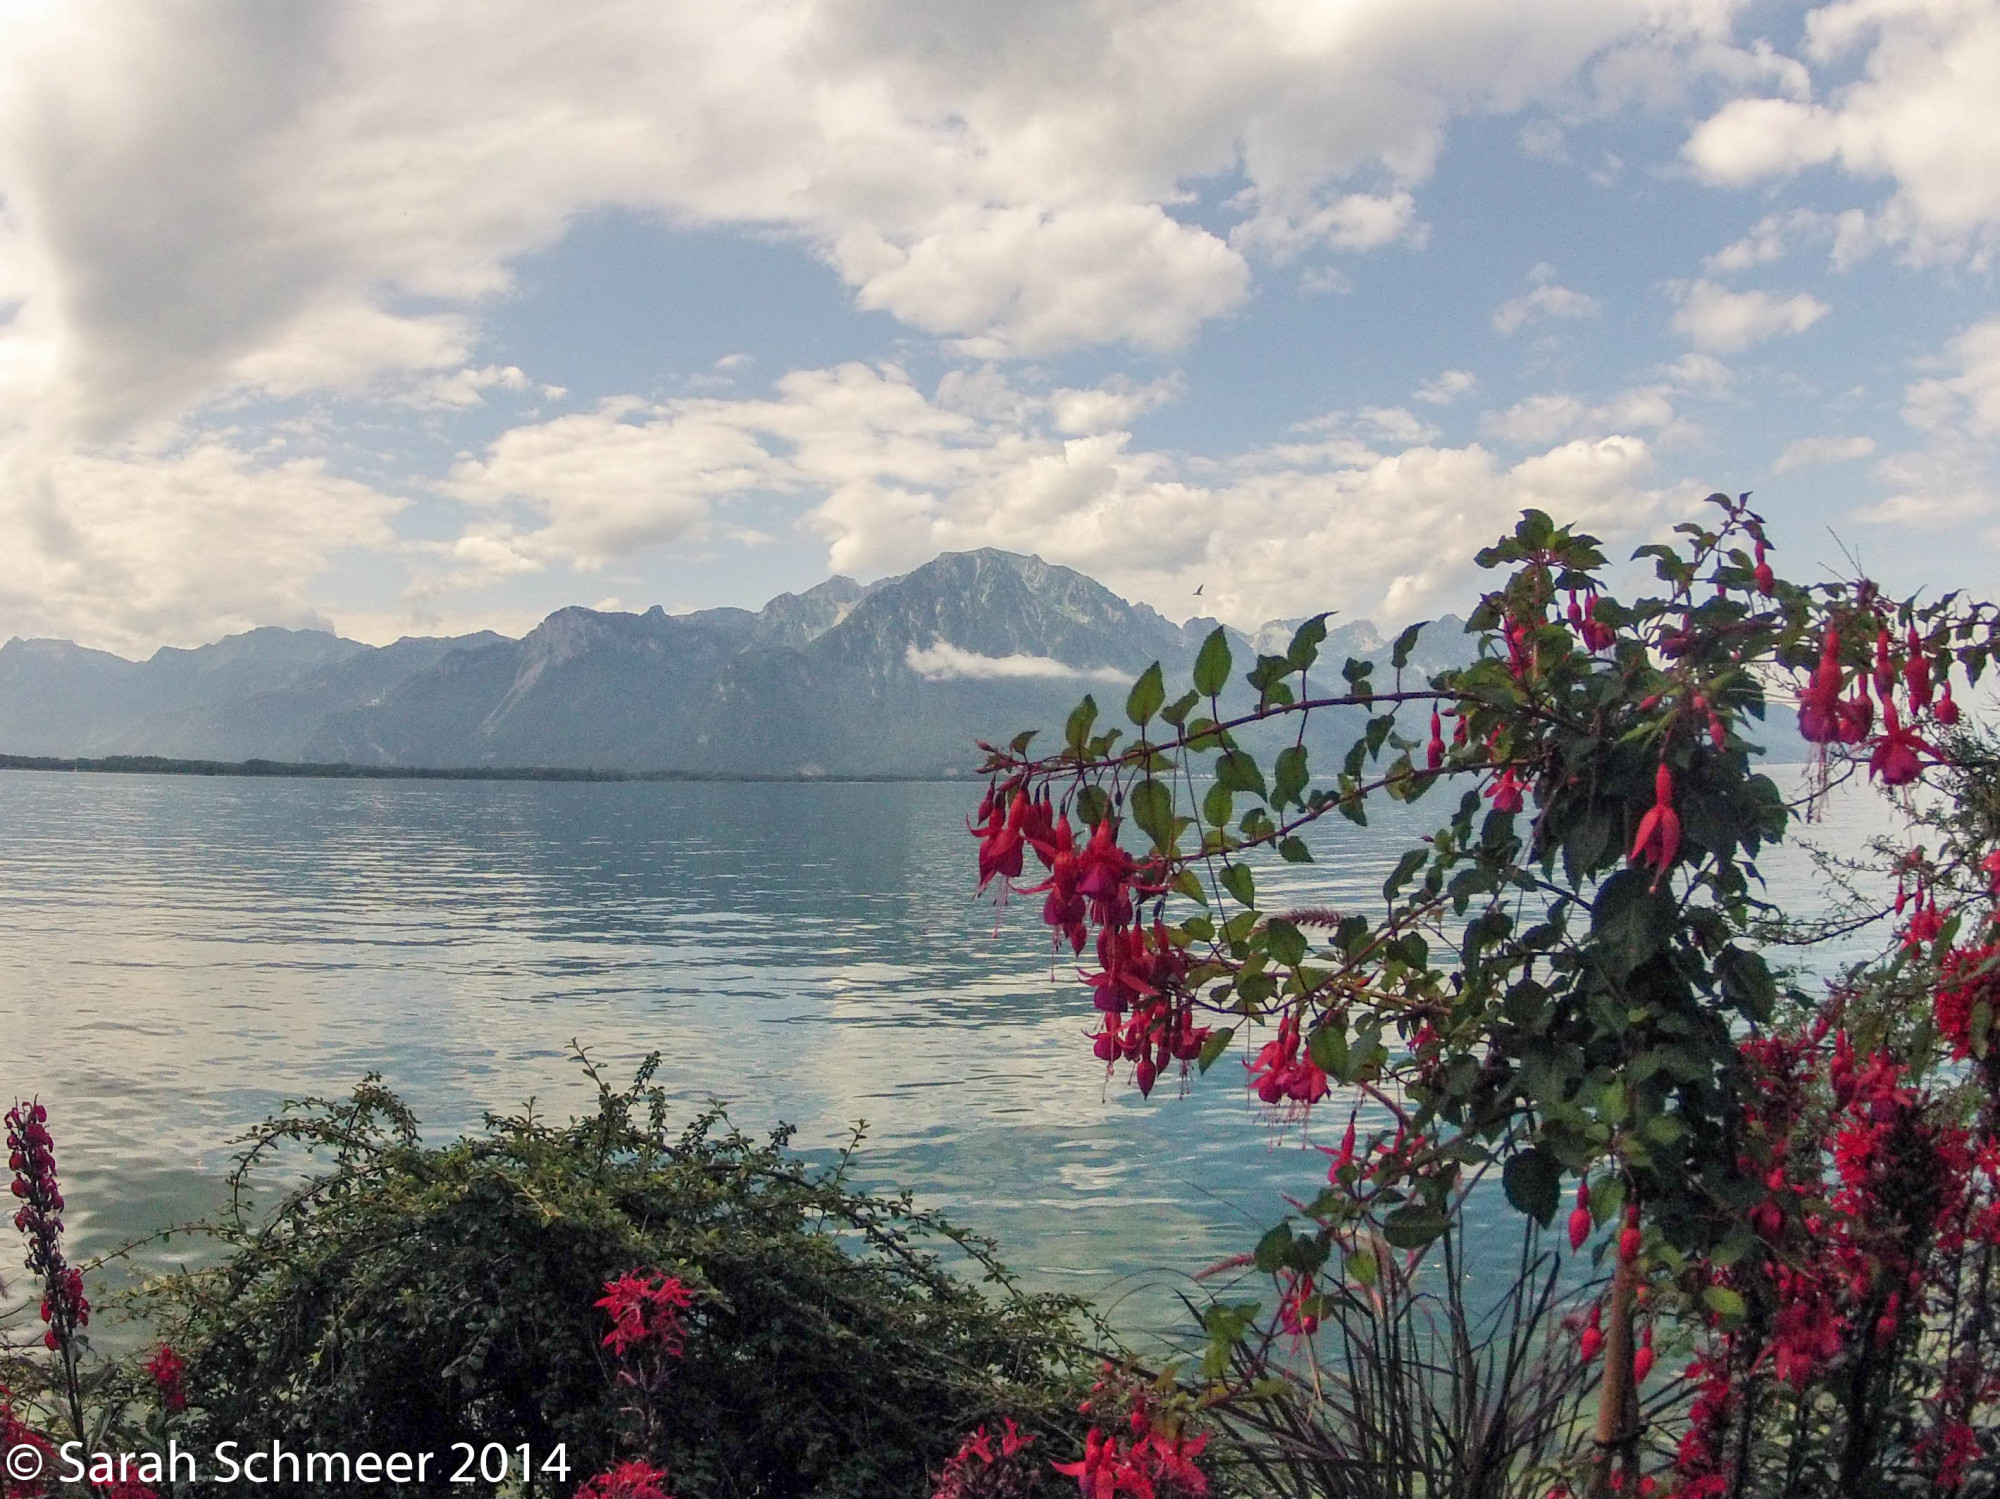 View over Lac Leman from Montreux